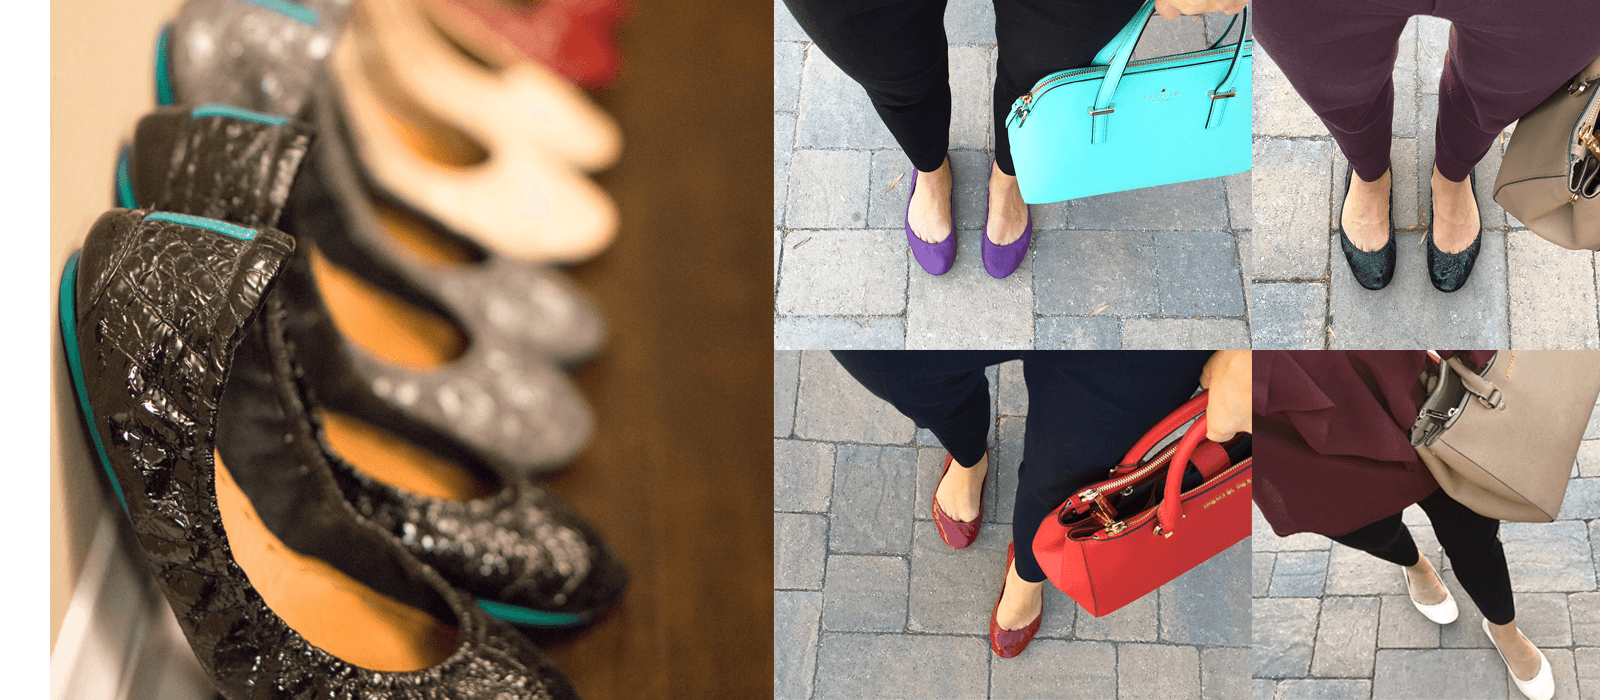 Tieks Ballet Flats Review | Honest Tieks Review | Ultimate Tieks Review | Are Tieks worth the price? | Are Tieks comfortable? | Do Tieks last? | Should I purchase patent or classic leather Tieks? | All your questions answered here. Best ballet flats for busy professionals. Click to read more!